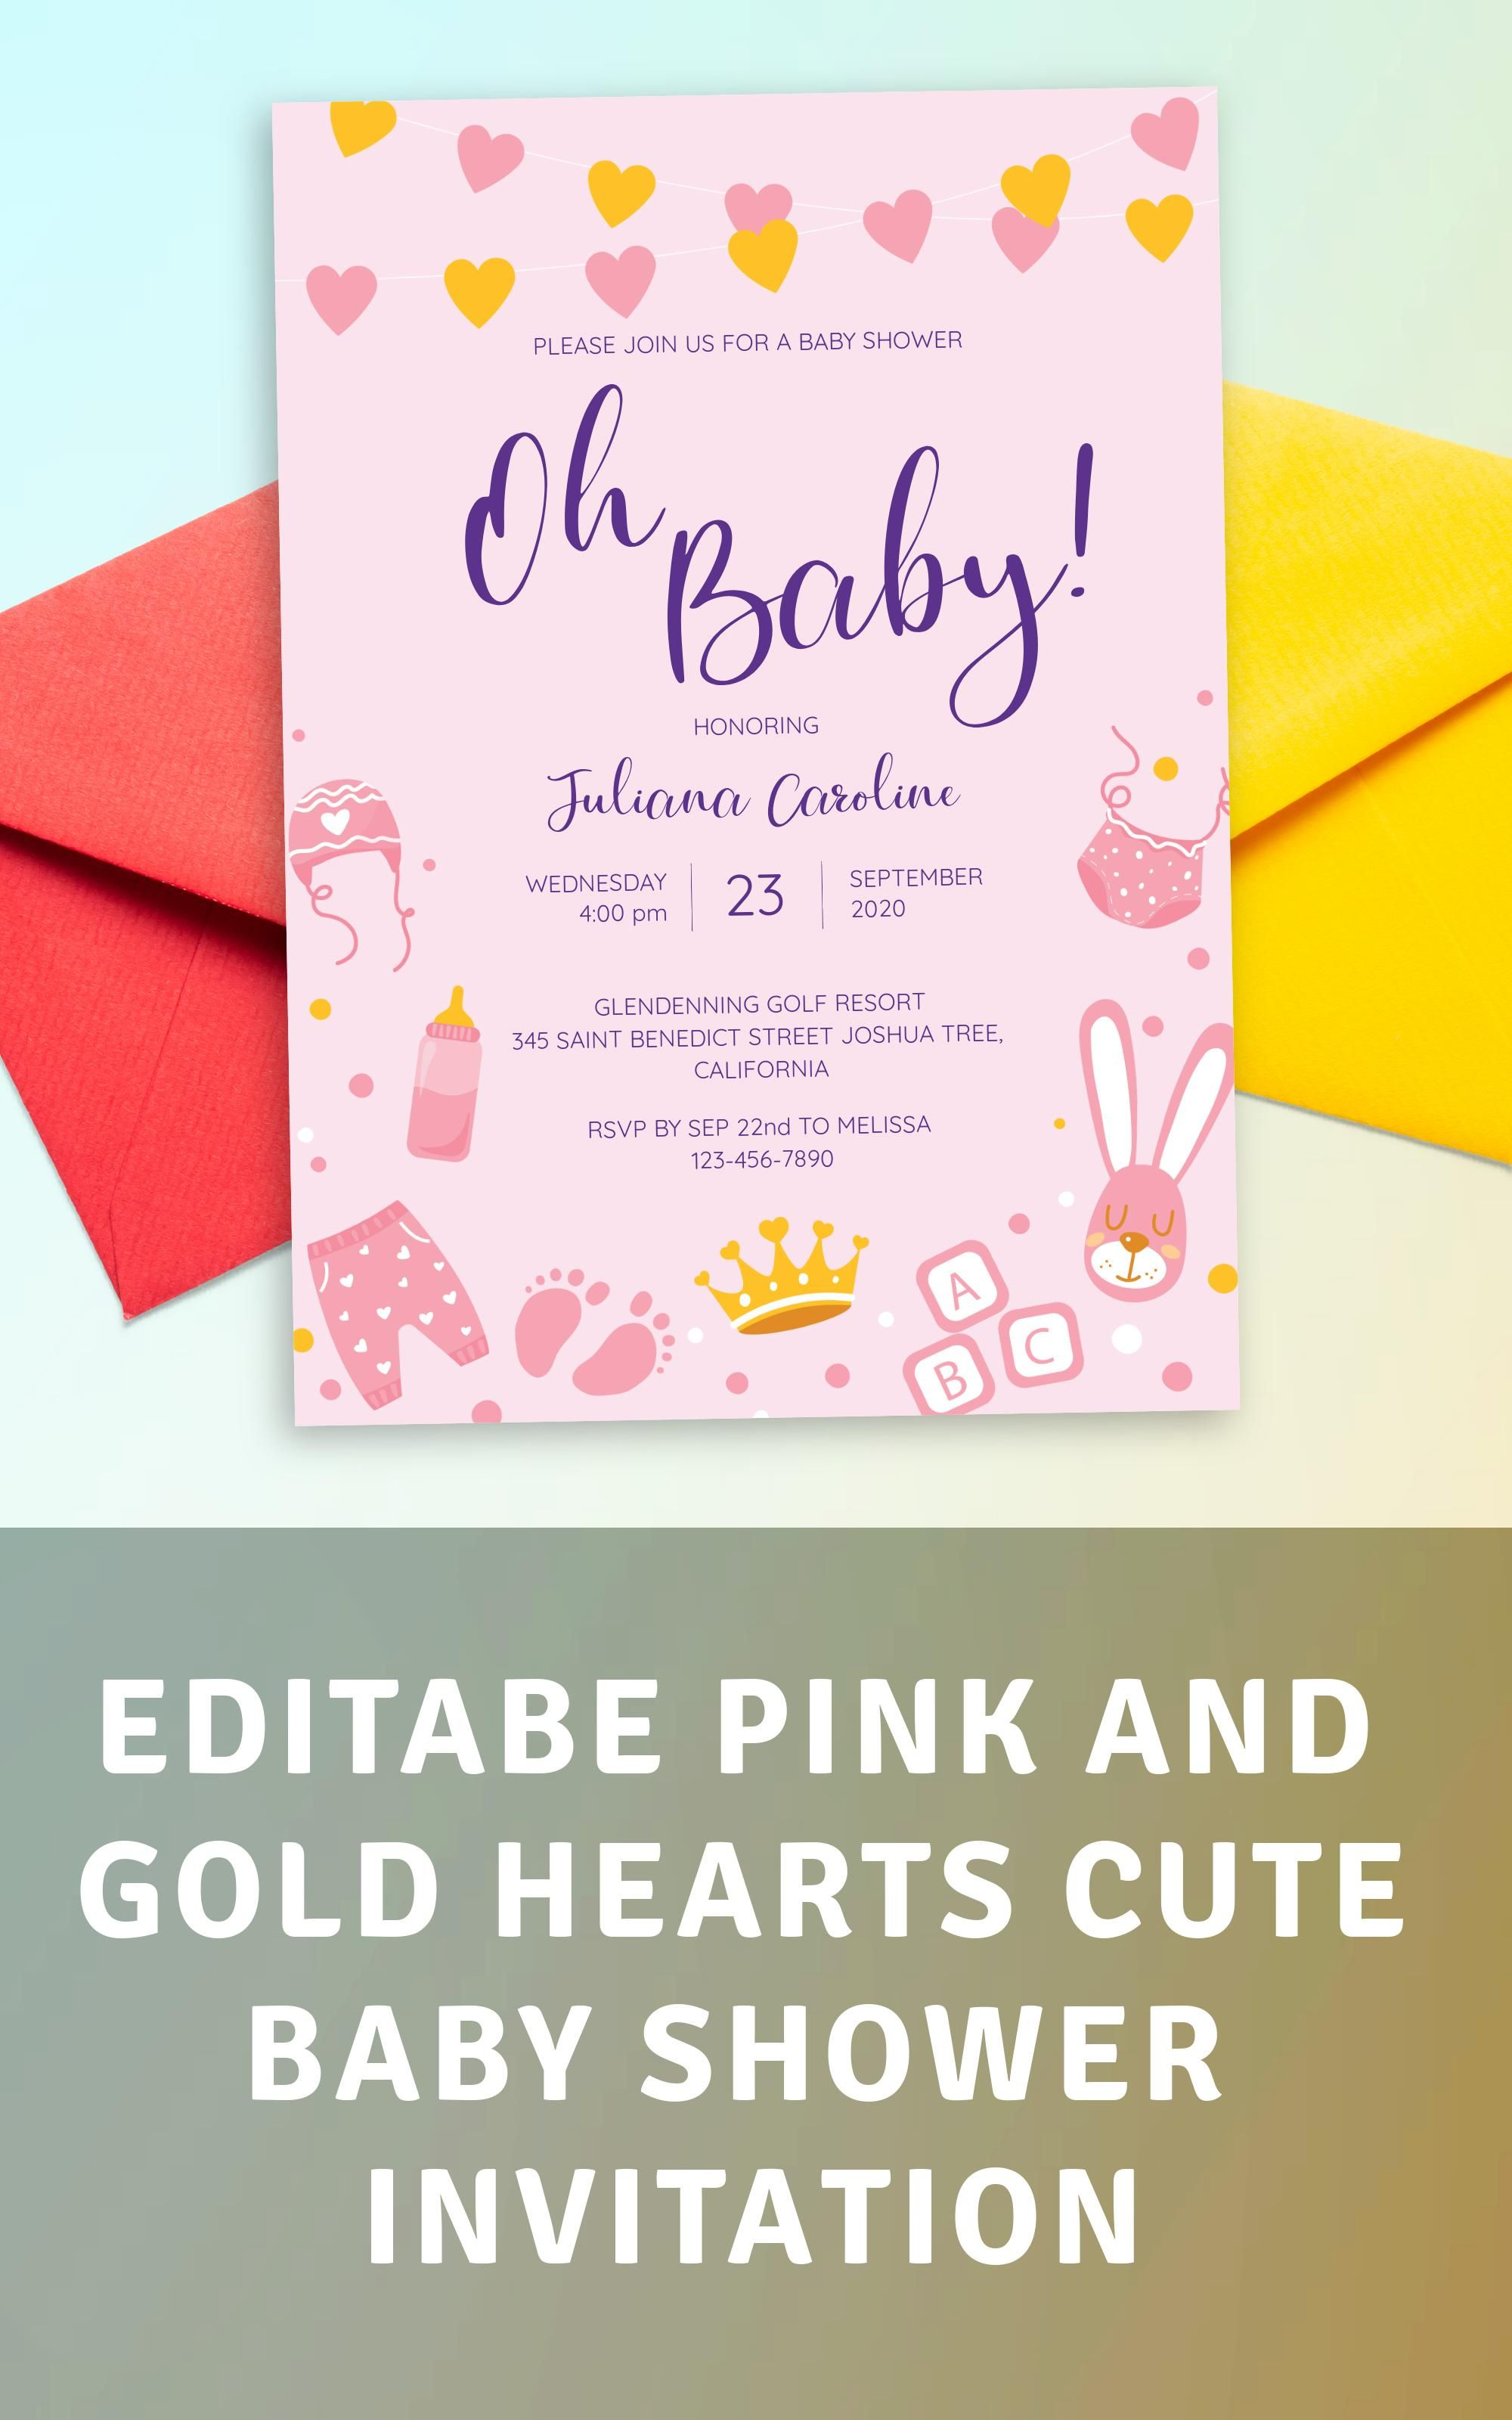 Pink And Gold Hearts Cute Baby Shower Invitation In 2020 Baby Shower Invitations Shower Invitations Invitations